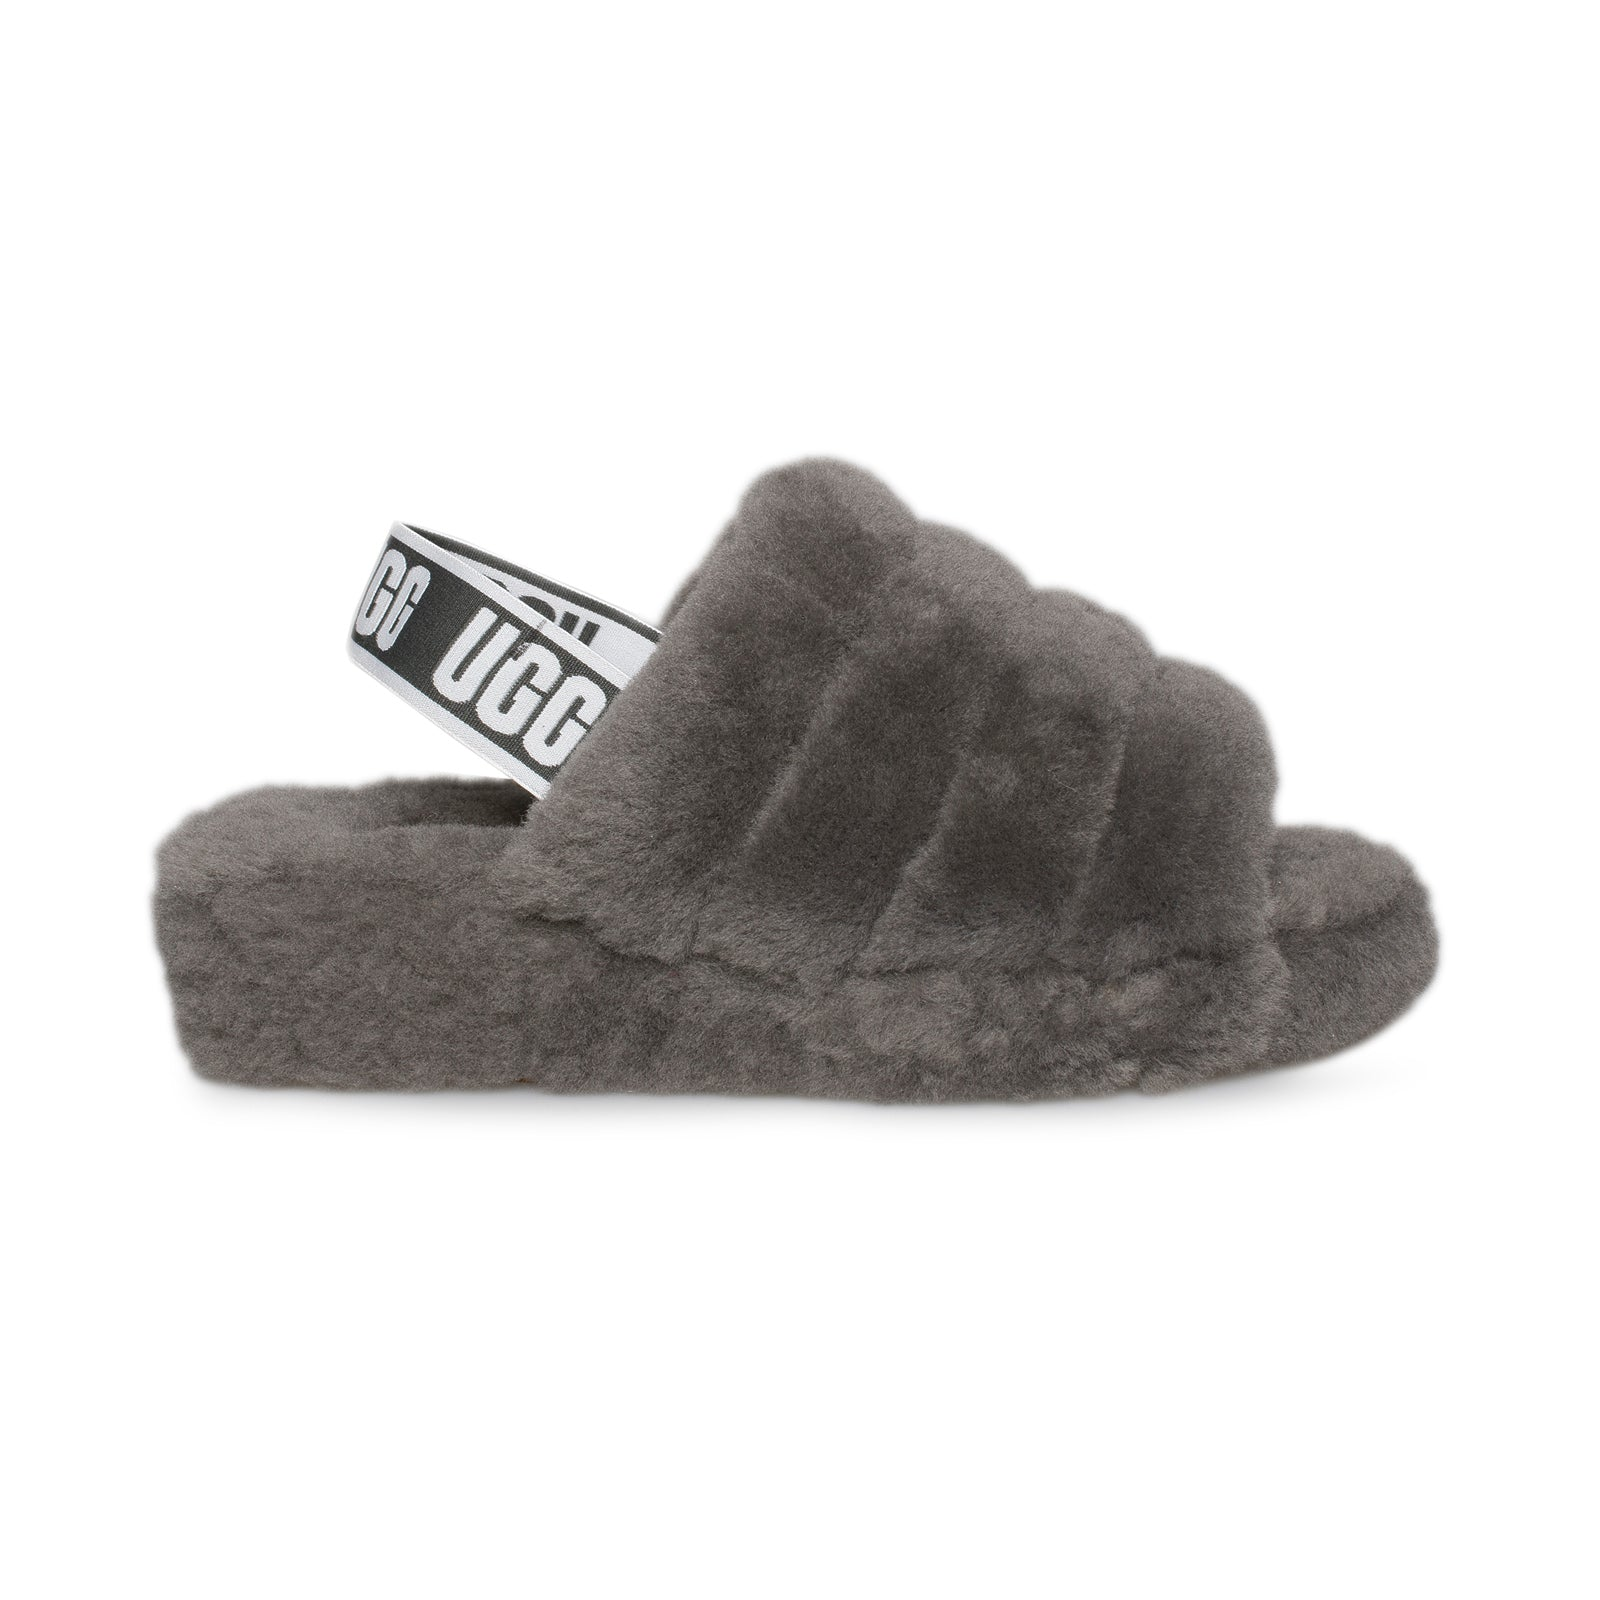 076790099 UGG Fluff Yeah Slide Charcoal Slippers - Women's - MyCozyBoots